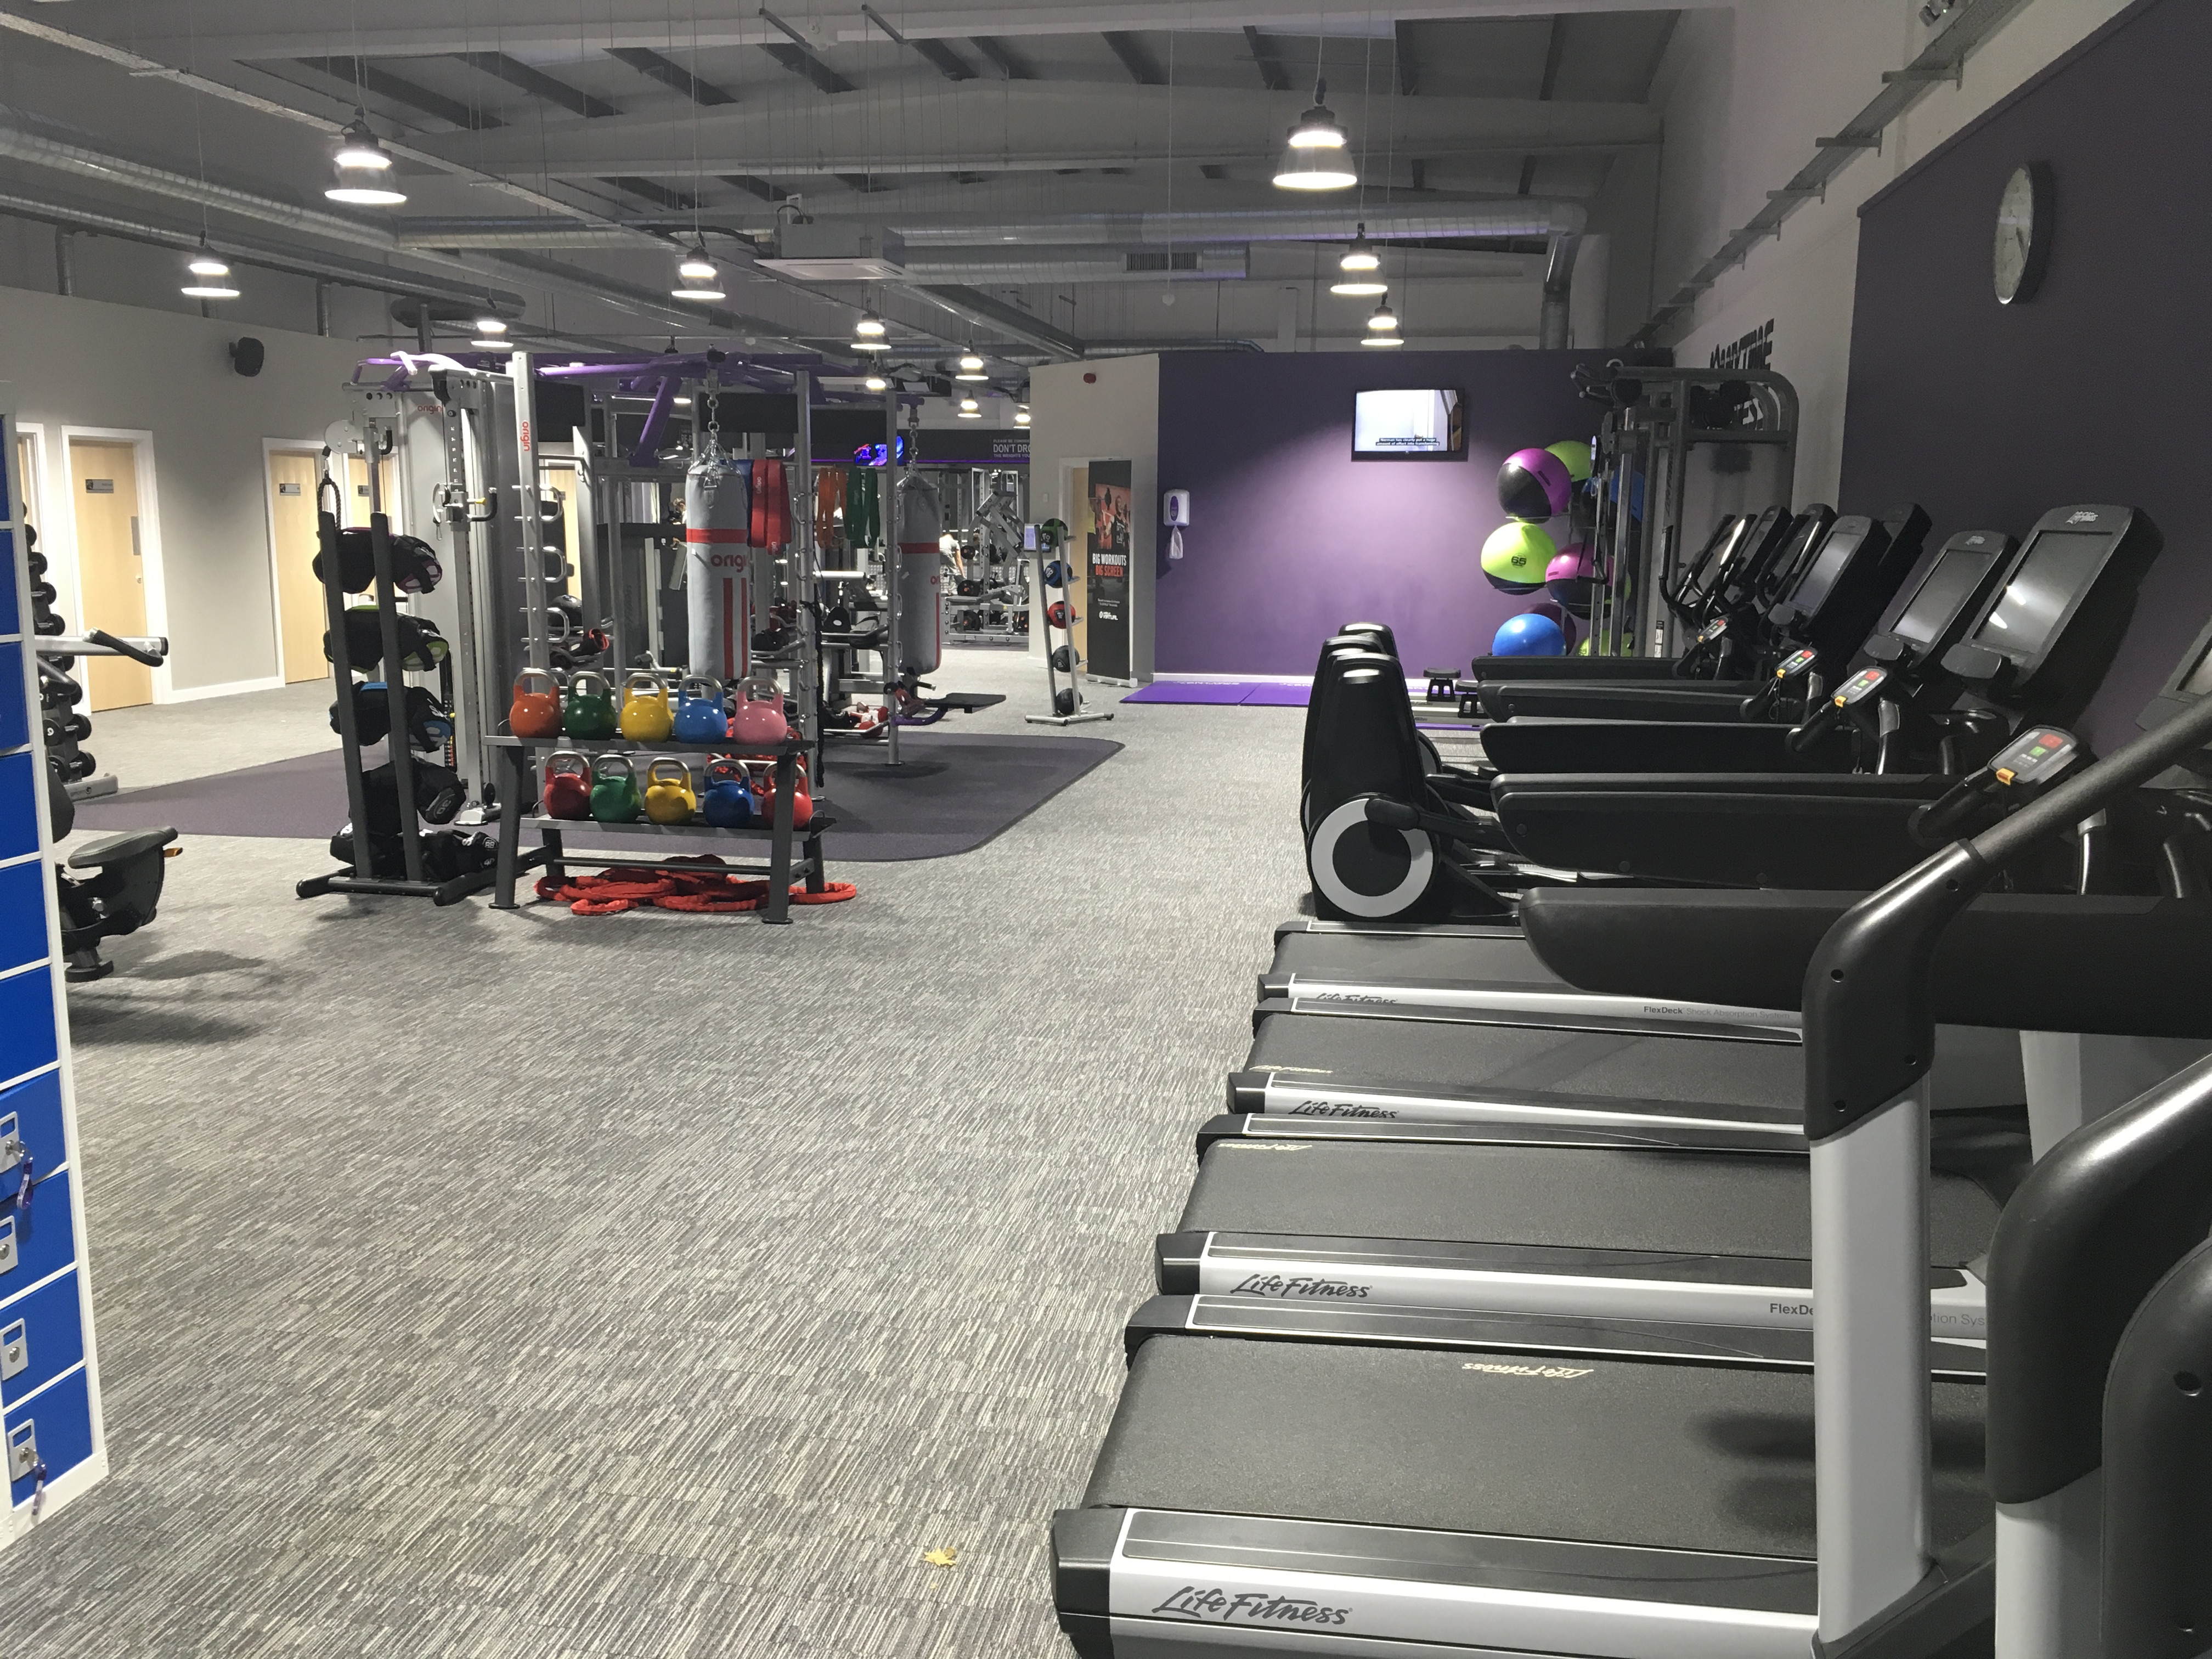 Anytime Fitness - Gym in Stratford-upon-Avon, West Midlands CV37 0BT